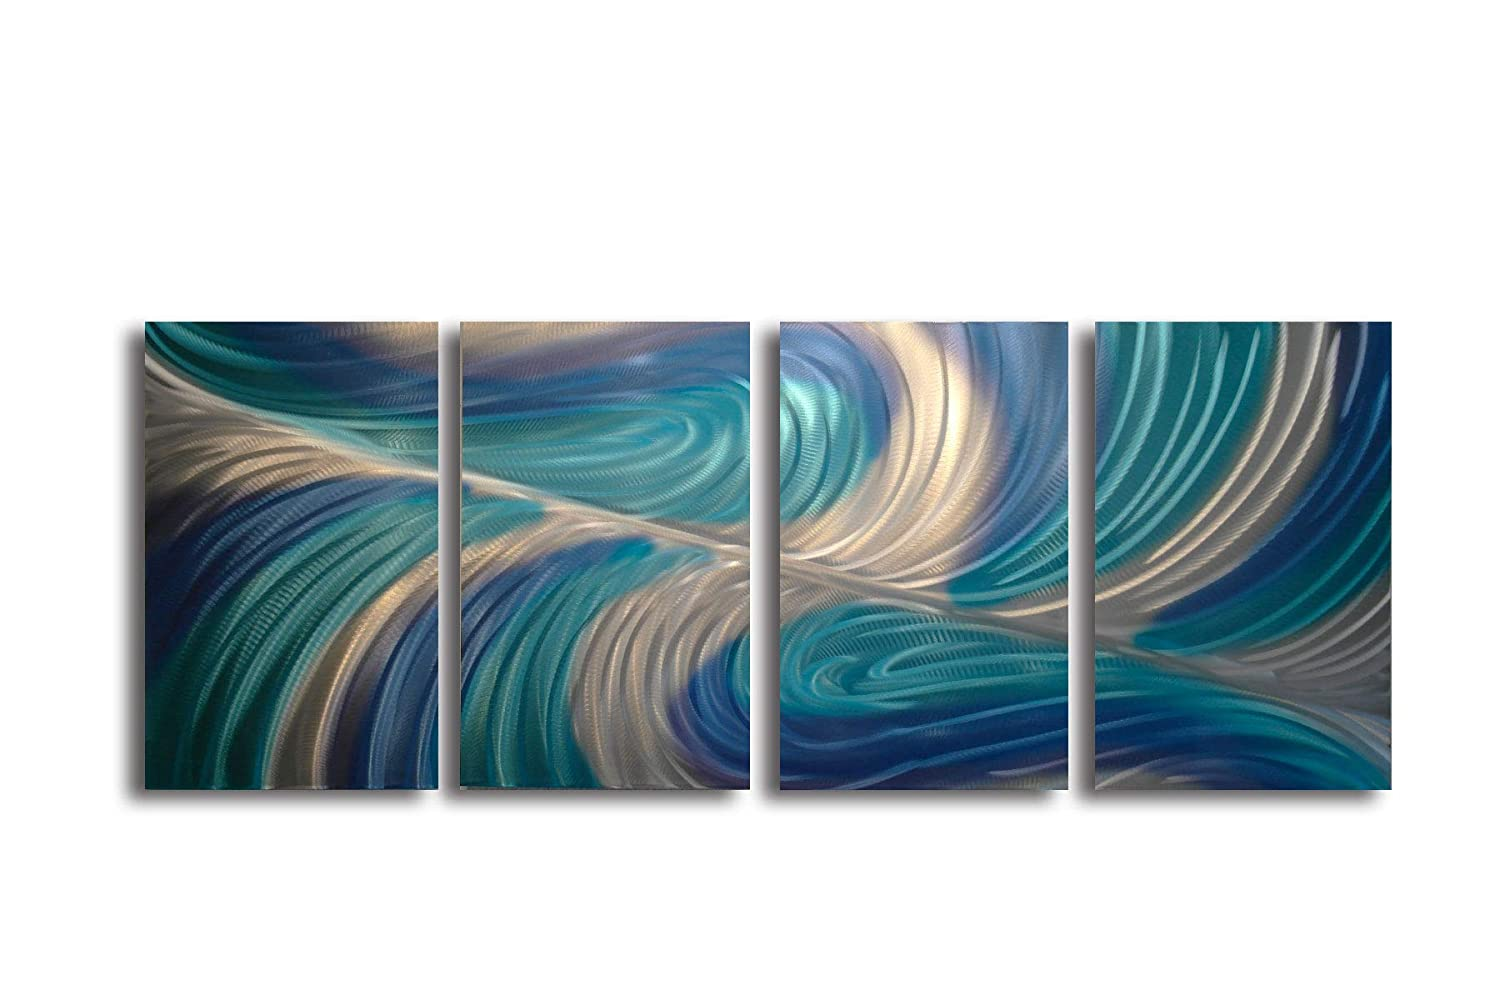 Amazon com miles shay echo 3 blues metal wall art modern home decor abstract artwork sculpture home kitchen